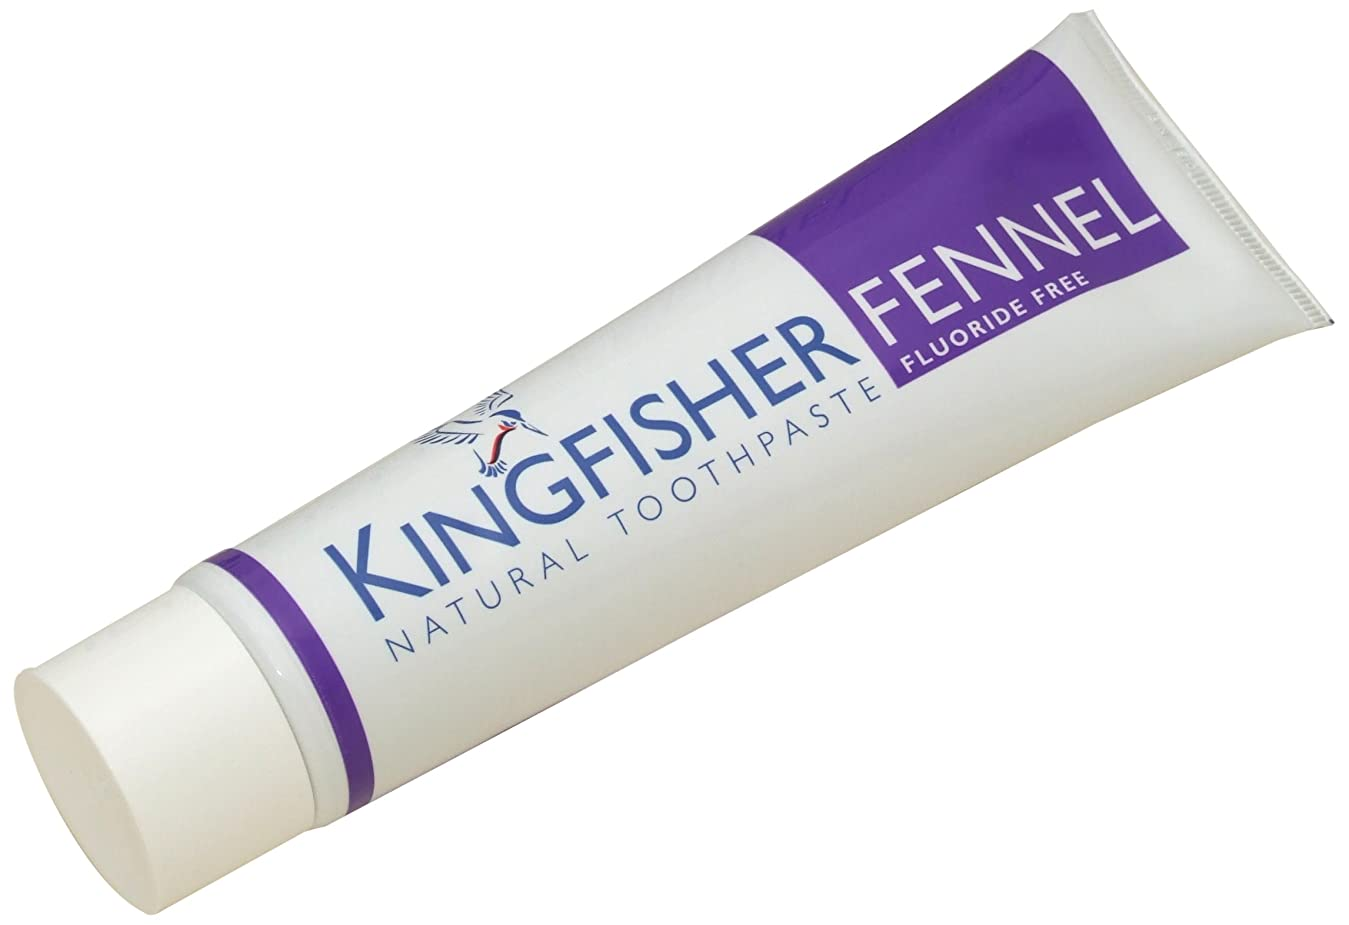 レンジ勃起ボンドKingfisher Toothpaste - Fennel (Fluoride Free) 100ml